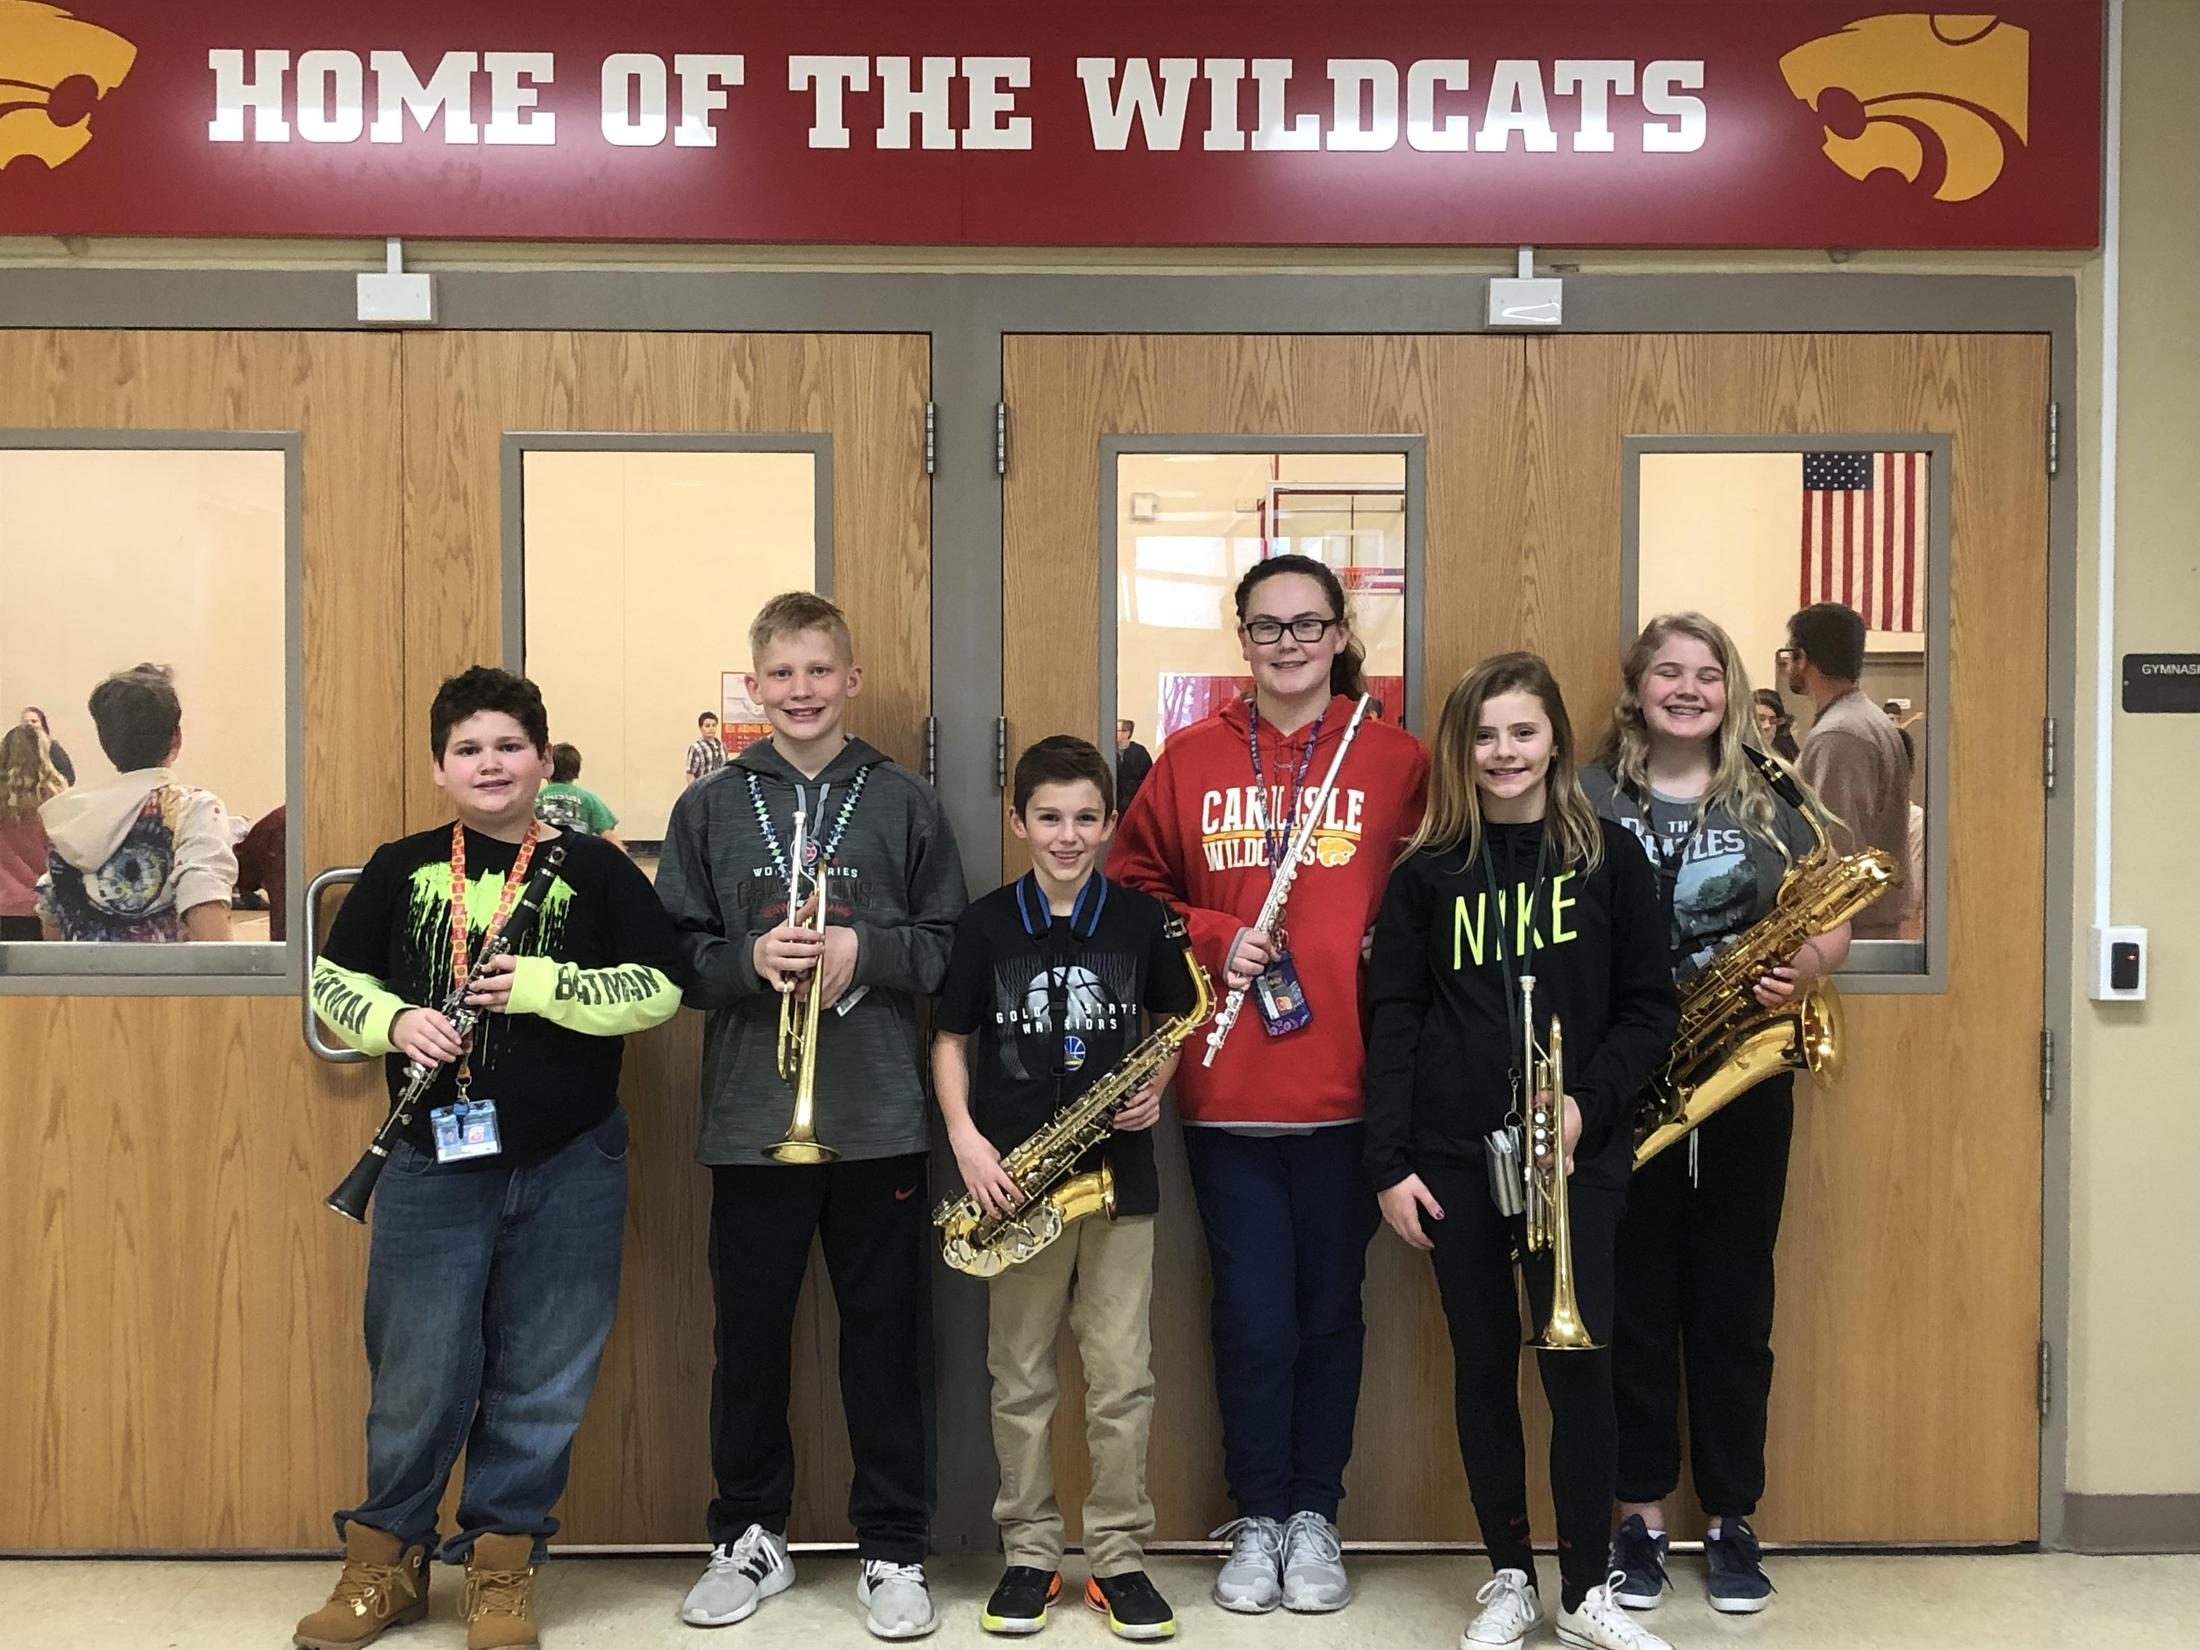 Ms Howland Middle School Wildcat Bands Kim Howland